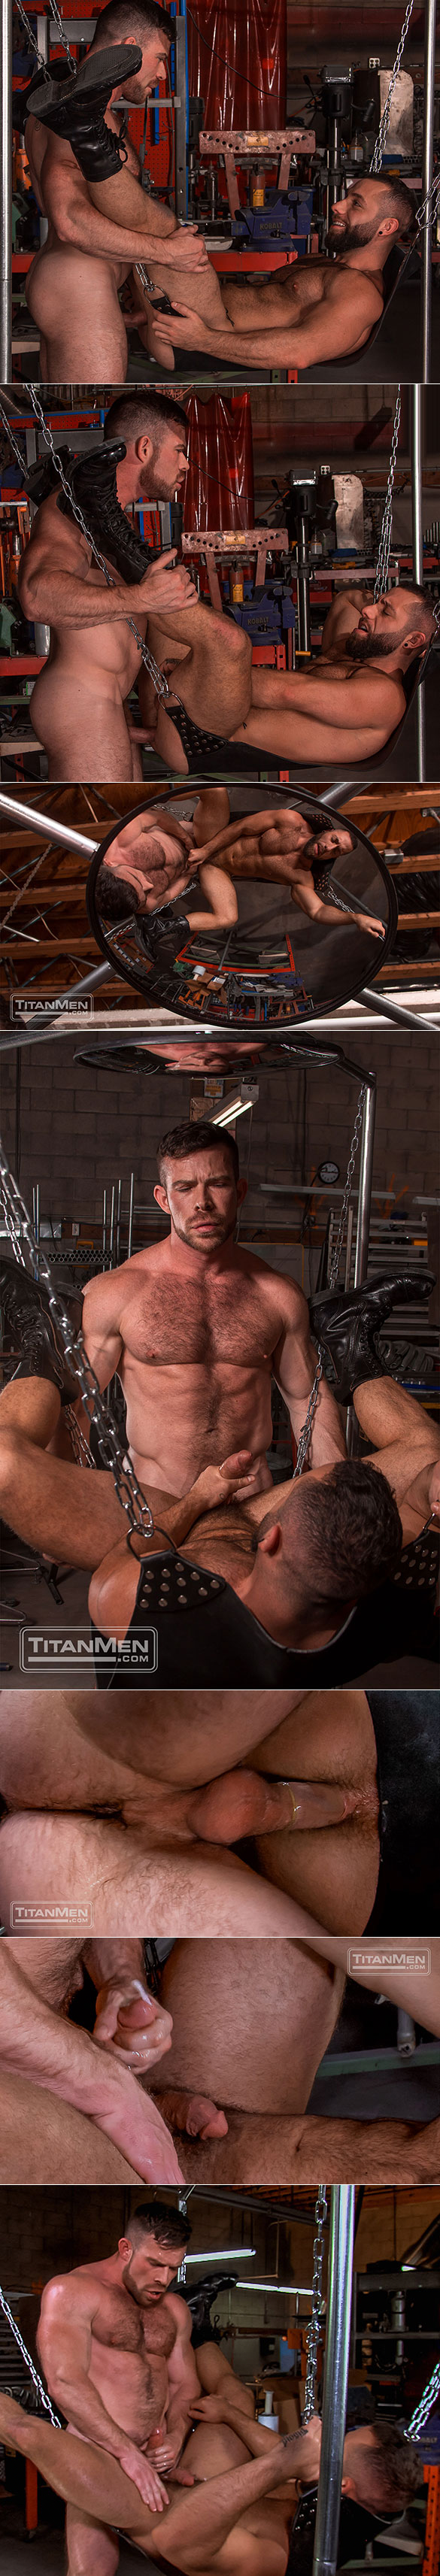 """TitanMen: Hairy muscle hunks Eddy CeeTee and Liam Knox bang each other in """"Sling"""""""